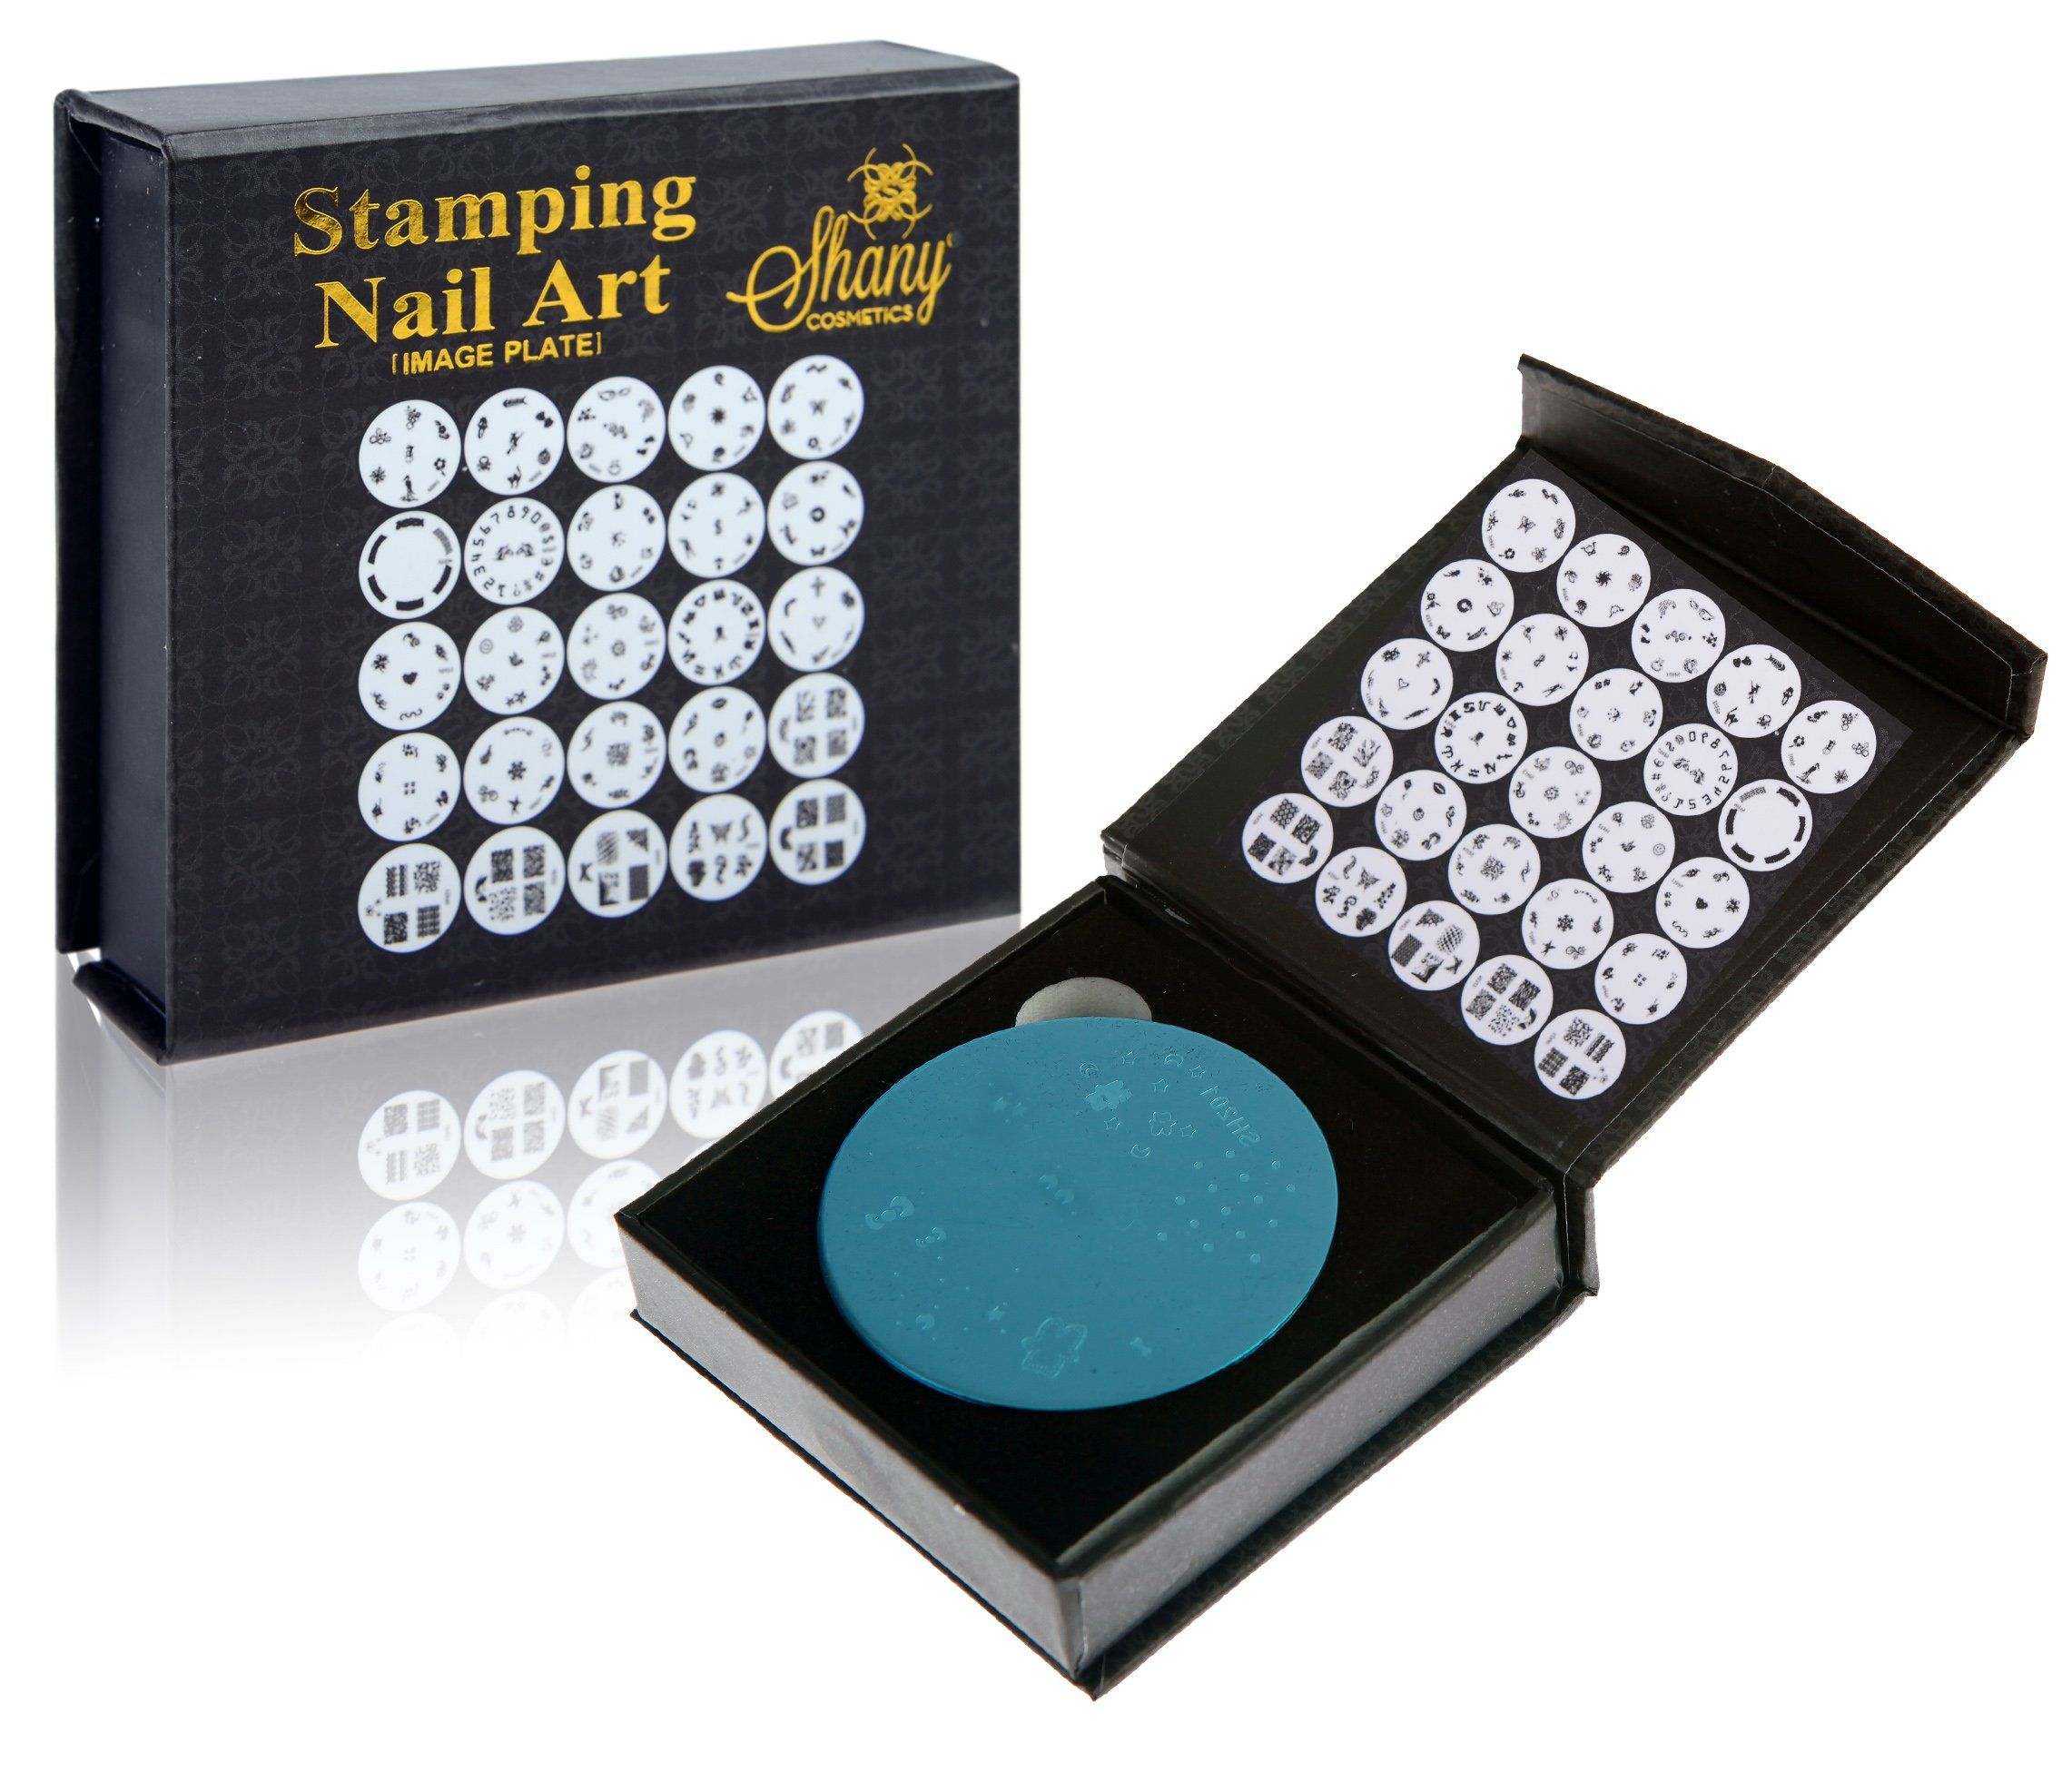 SHANY Cosmetics New Image Plates Set Nail Polish Image Plates with Storage, 25 Count